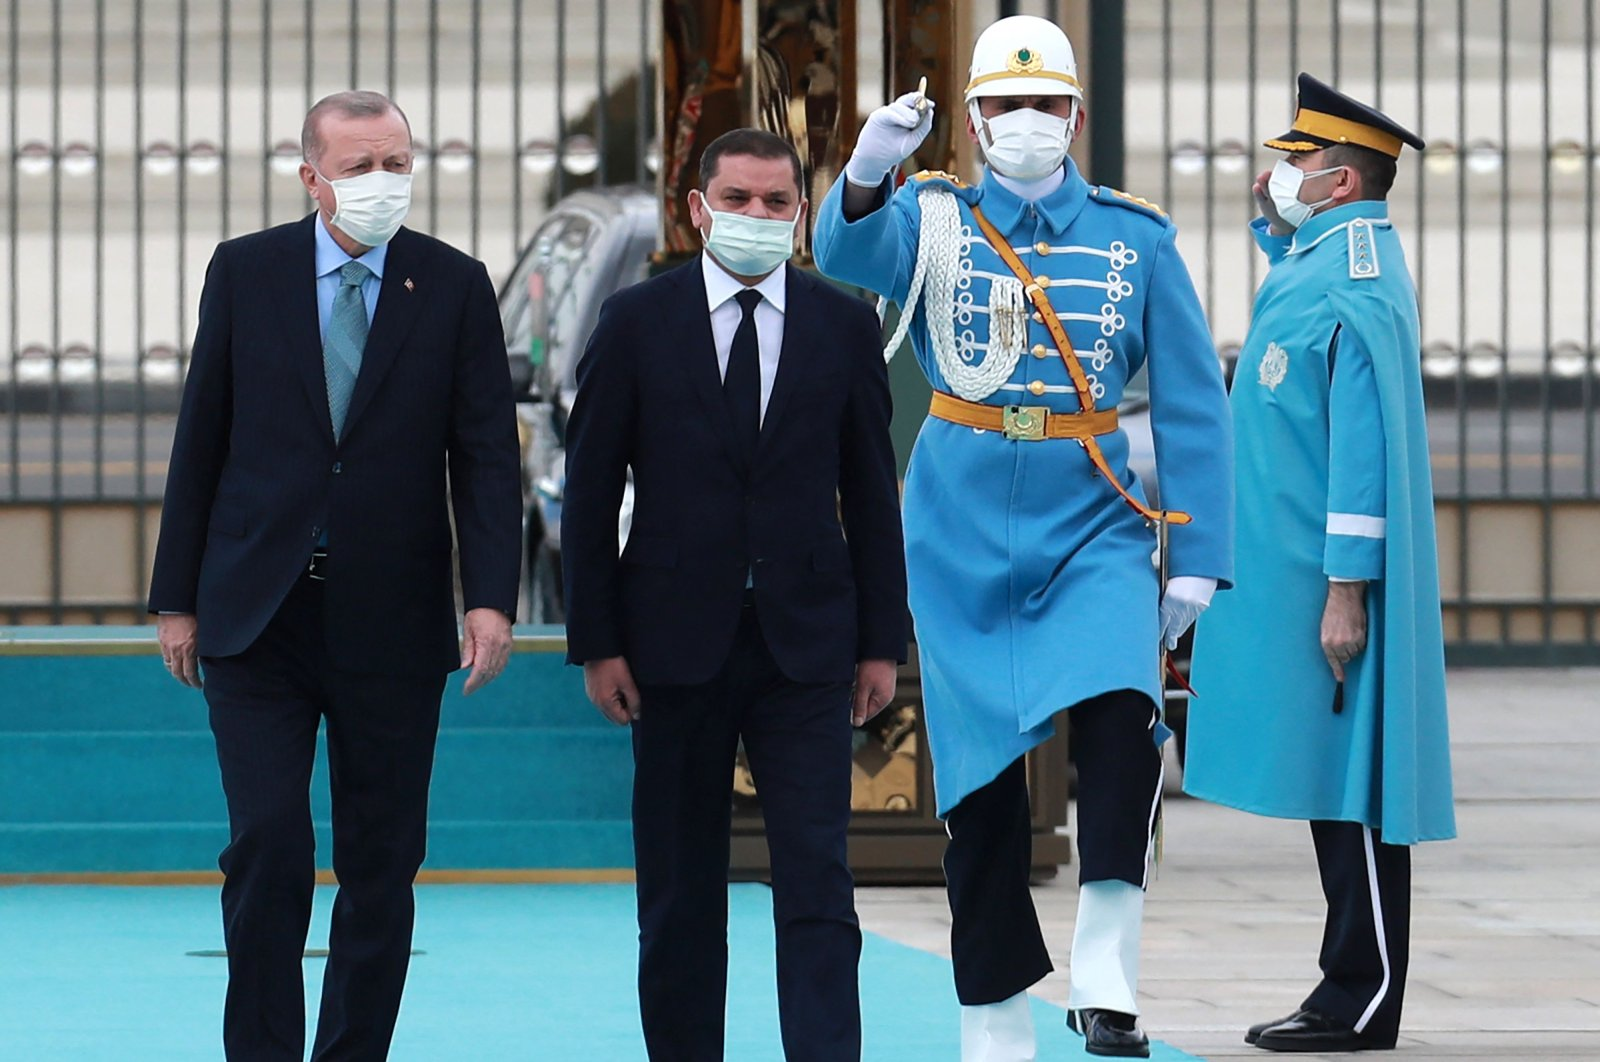 President Recep Tayyip Erdoğan (L) and Libyan Prime Minister Abdul Hamid Dbeibah walk past a guard of honor during the official ceremony prior to their meeting in Ankara, Turkey,  April 12, 2021. (AFP Photo)